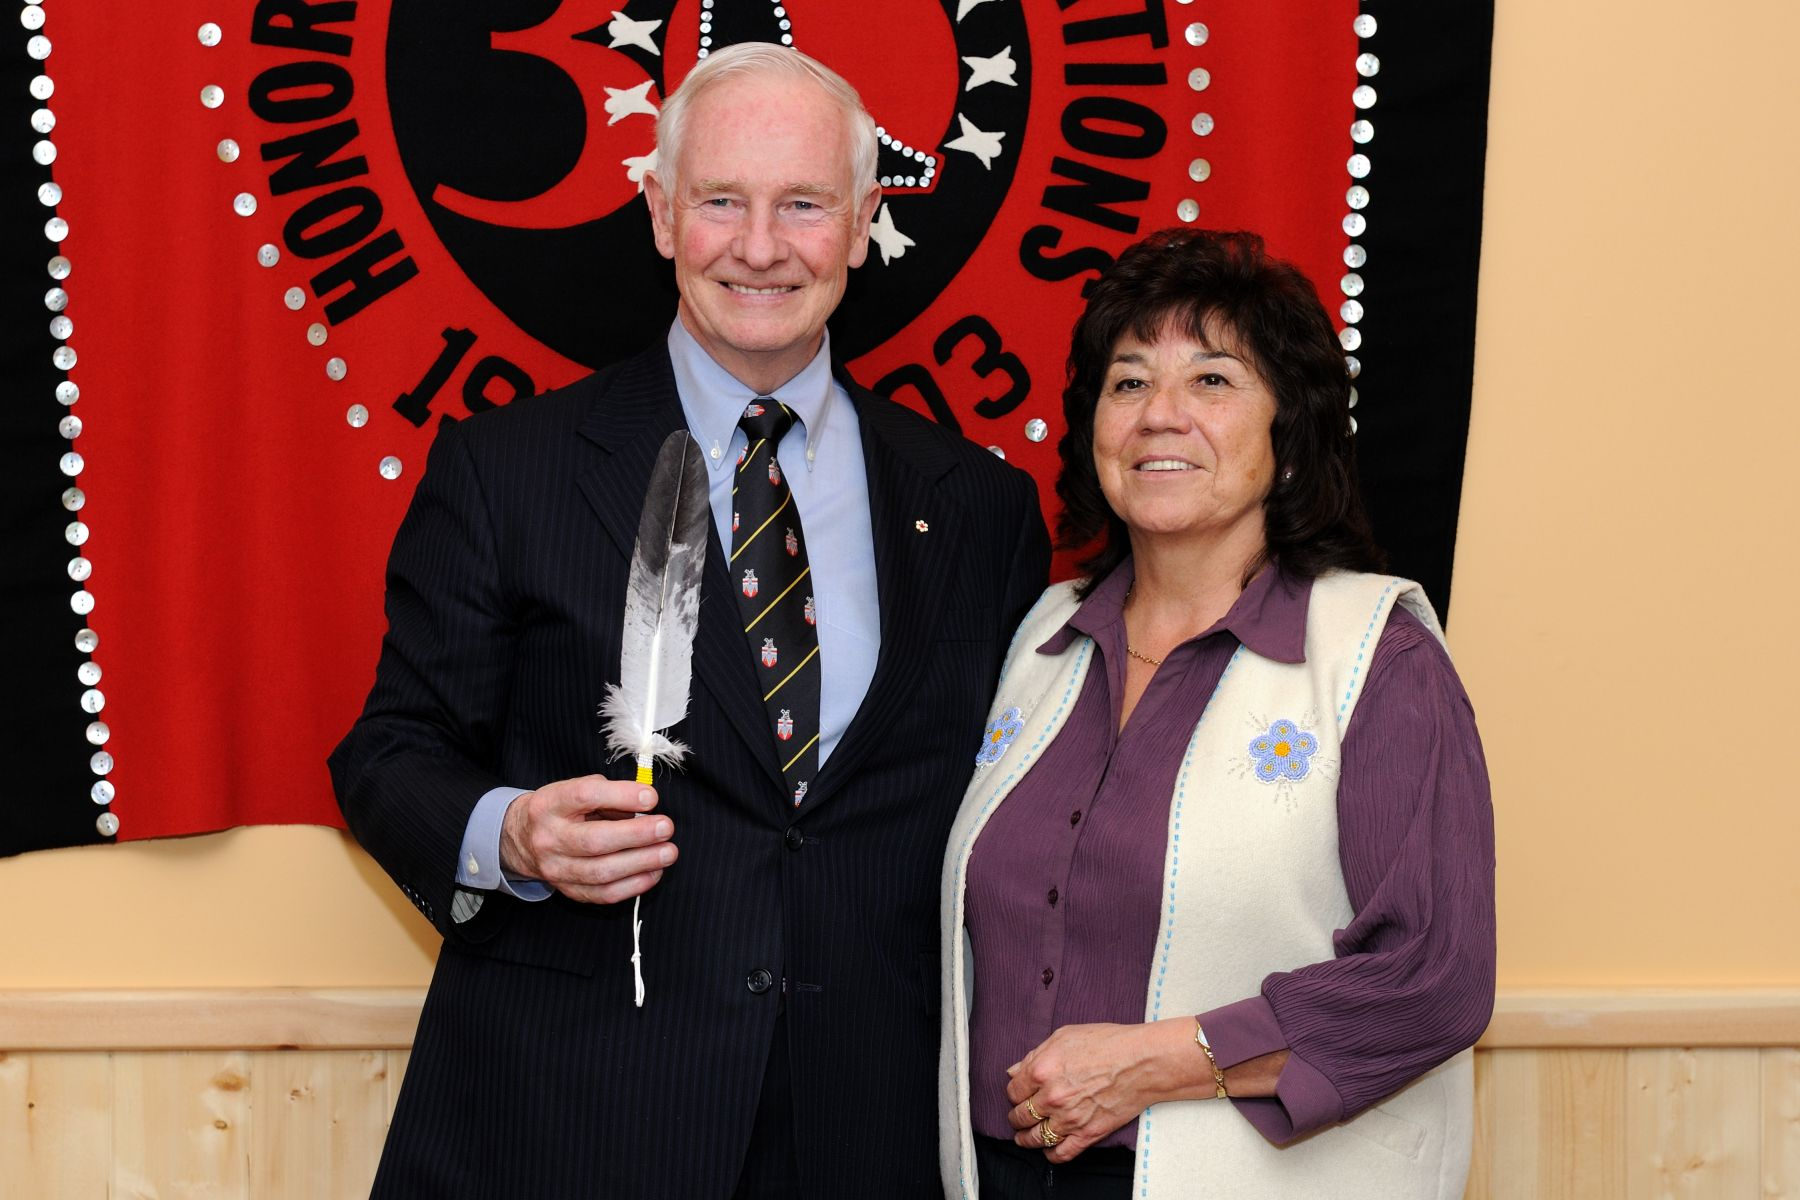 Official photo of His Excellency with Grand Chief Ruth Massie of the Council of Yukon First Nations.